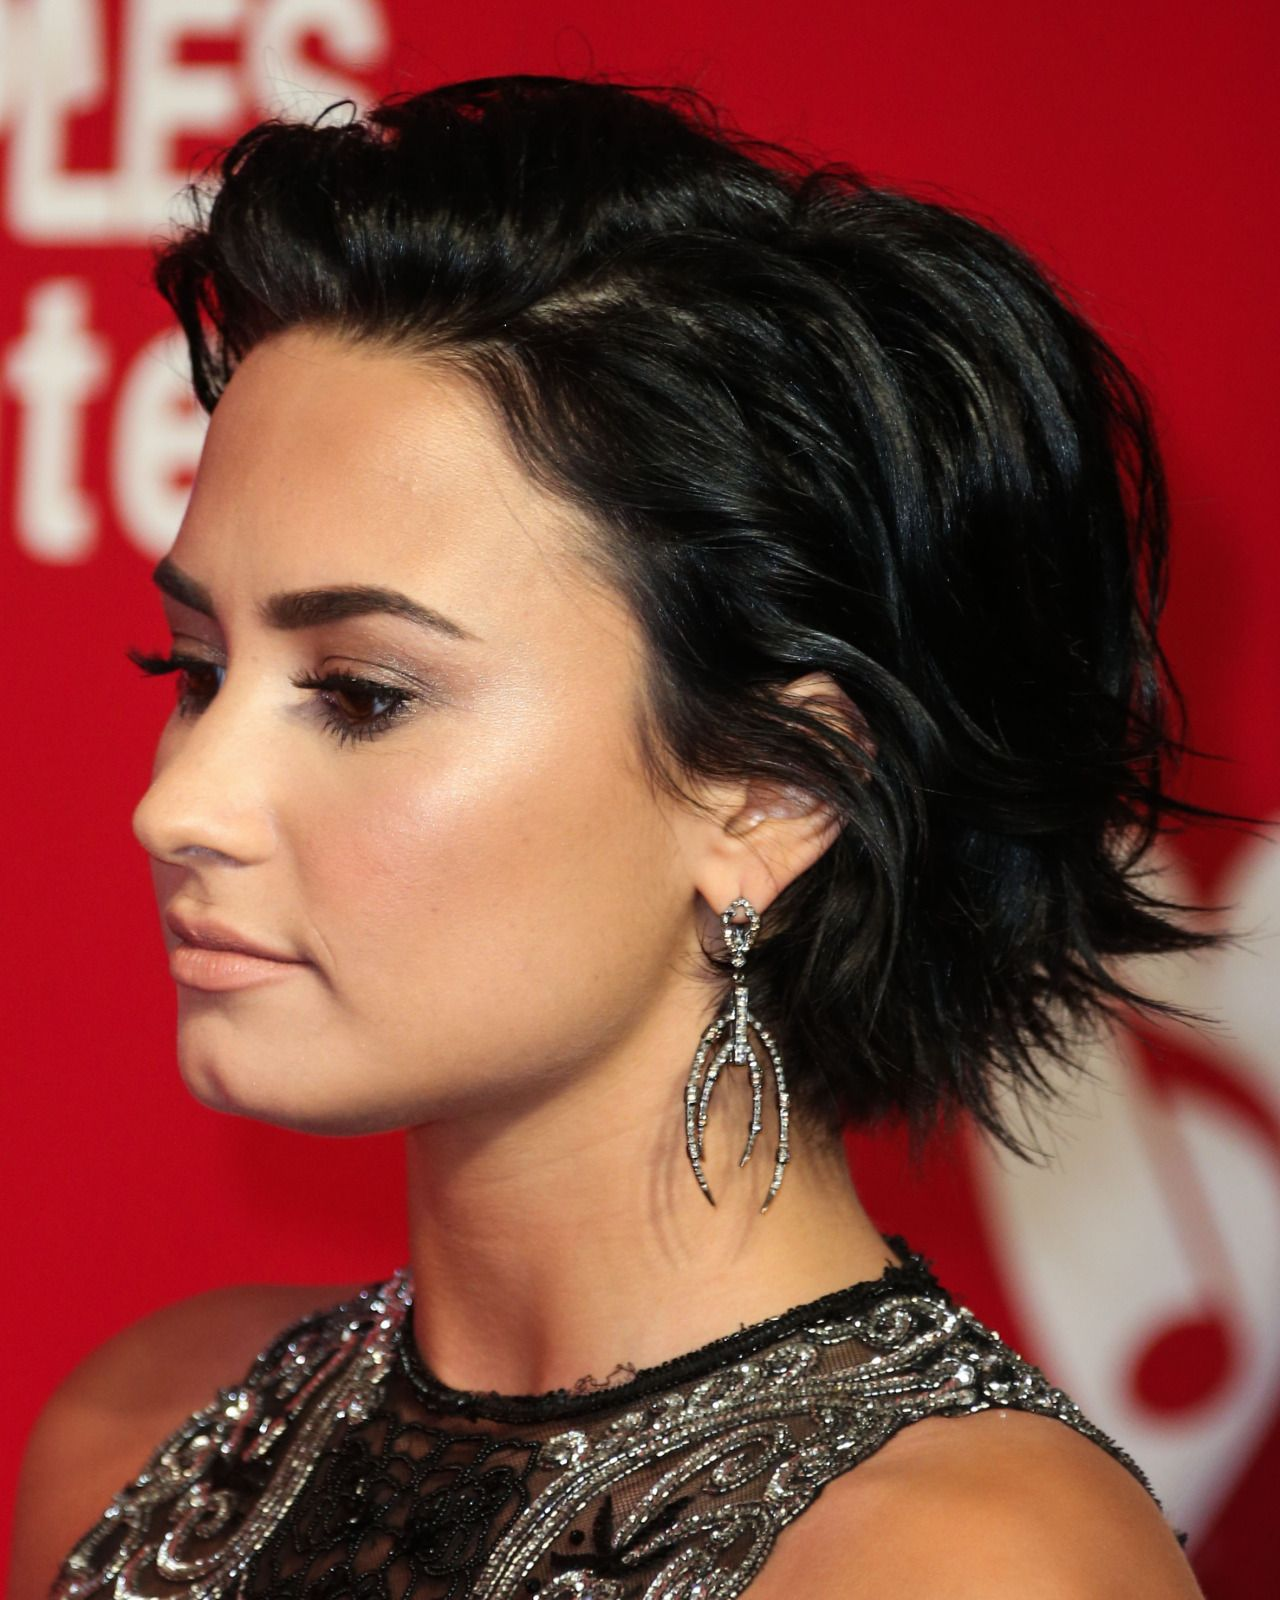 demi lovato hair bob - Google Search | Hair Ideas ...